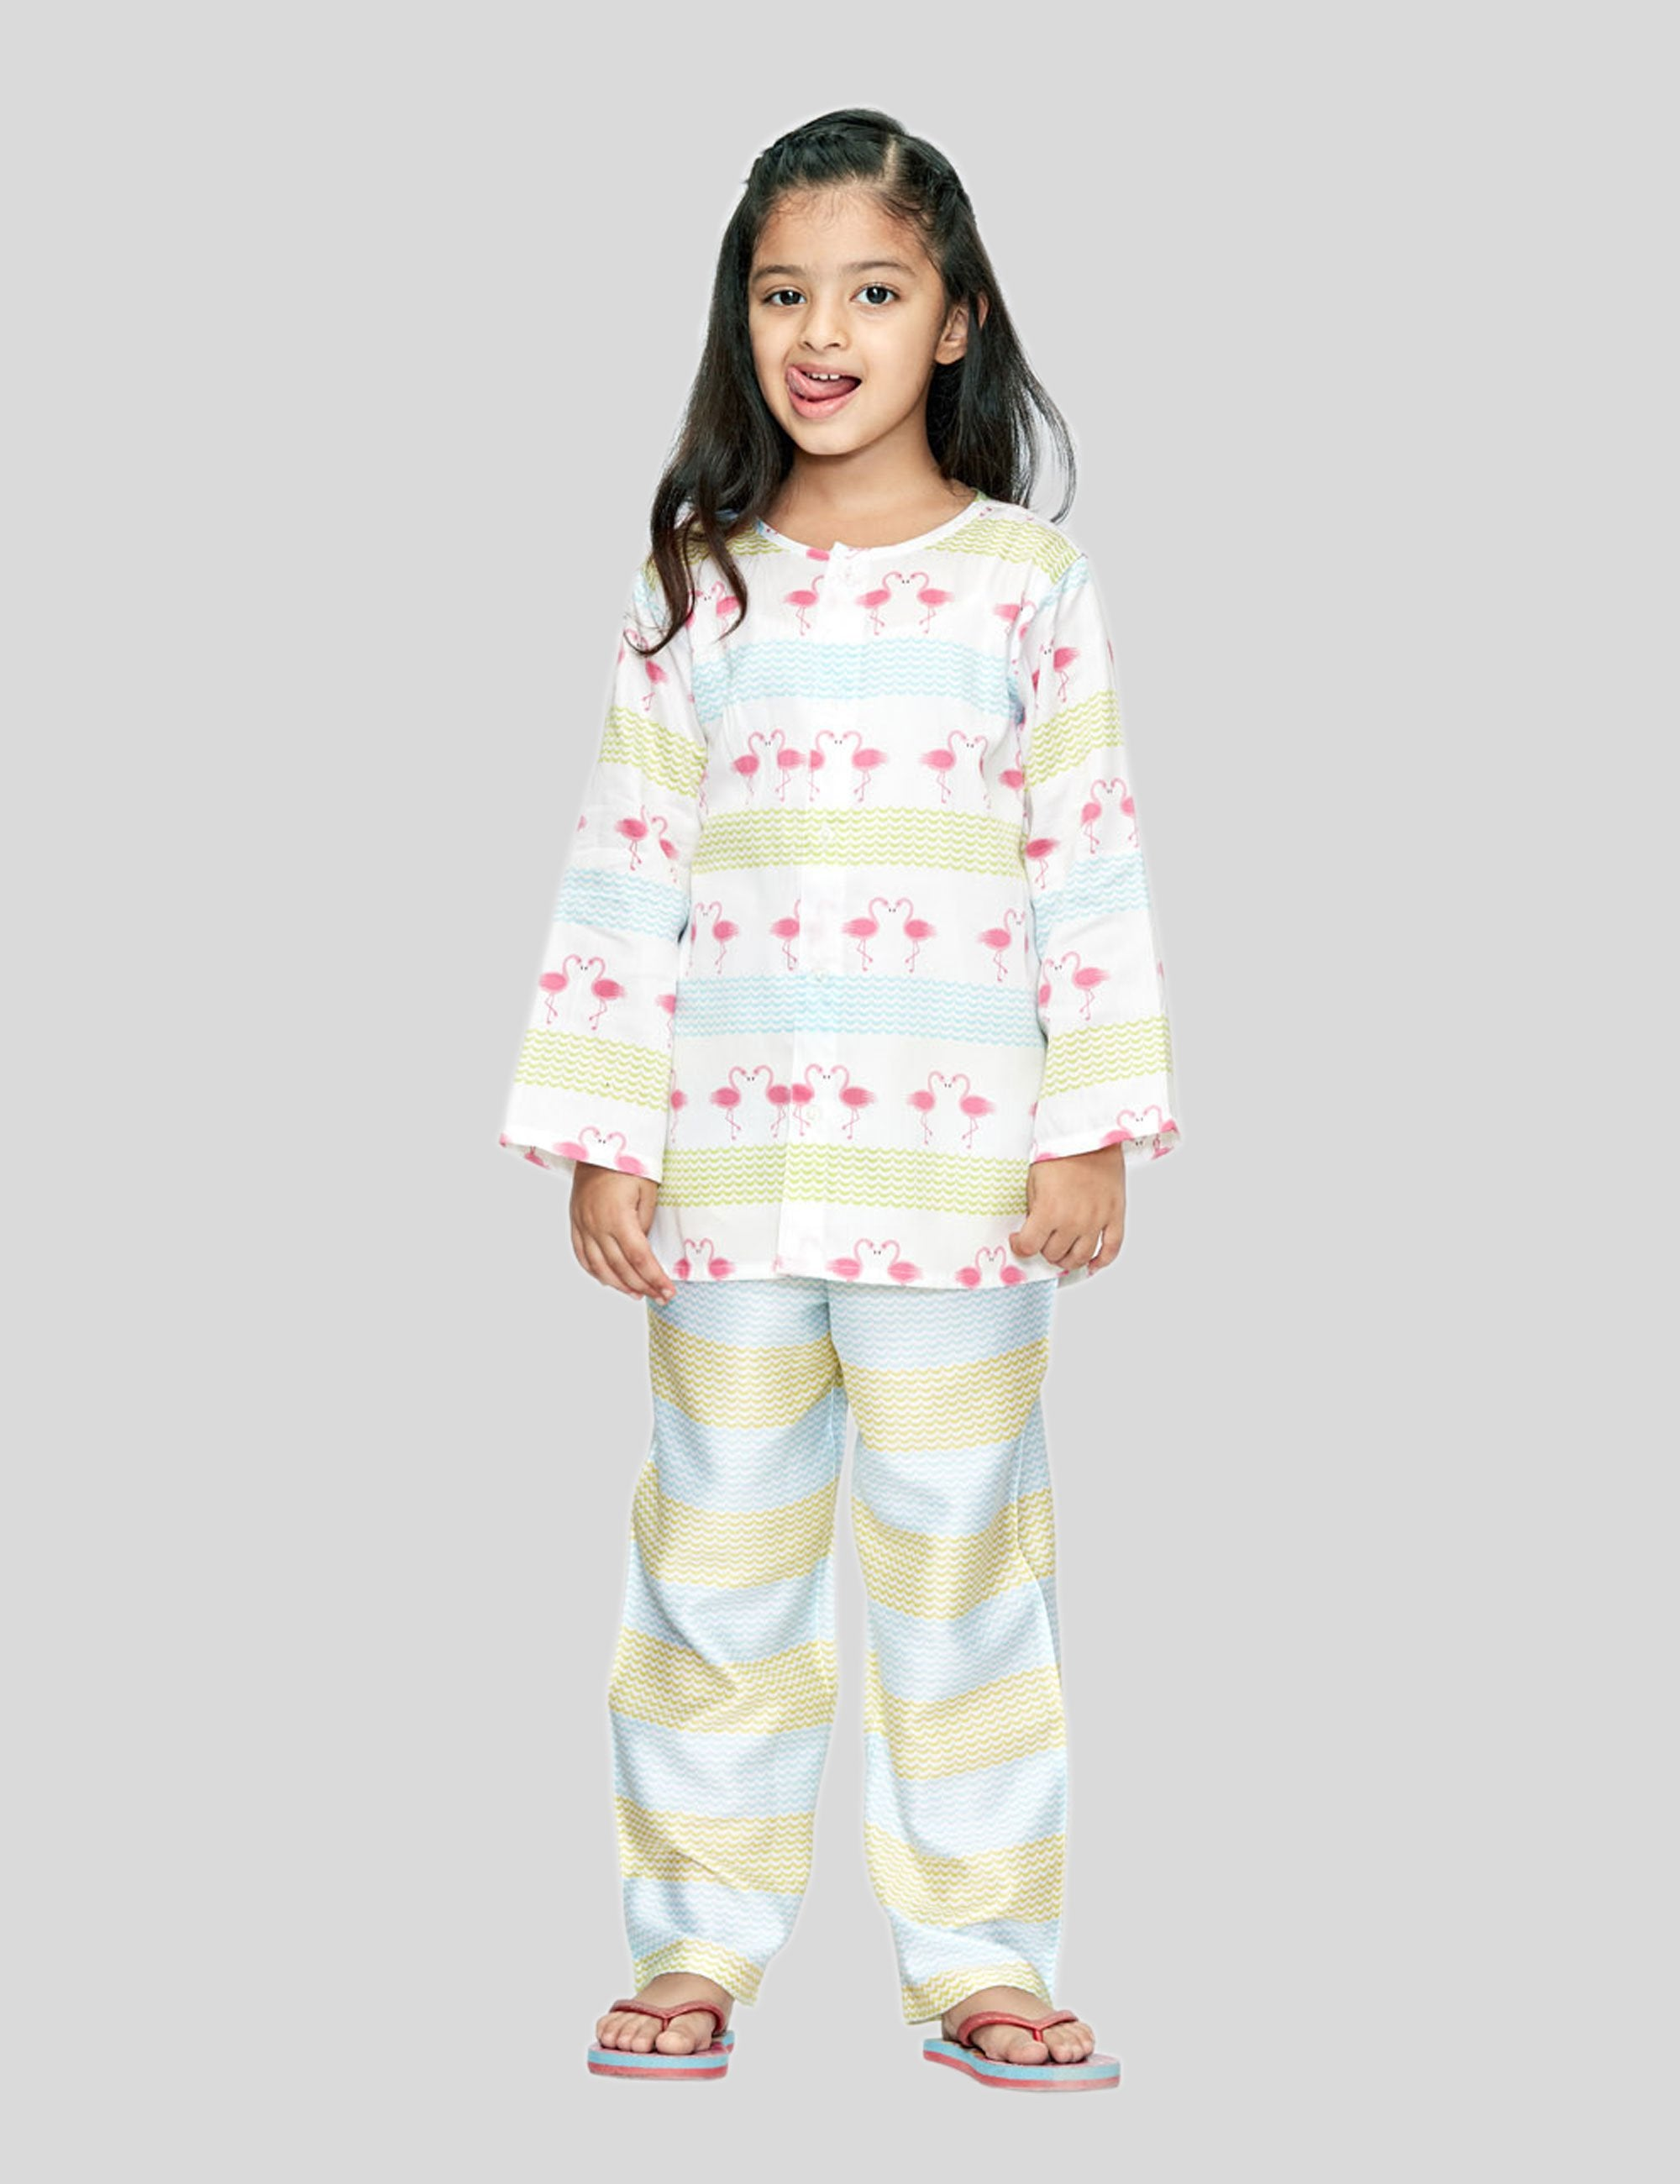 Flamingo Cotton Night Suit in White for Girls